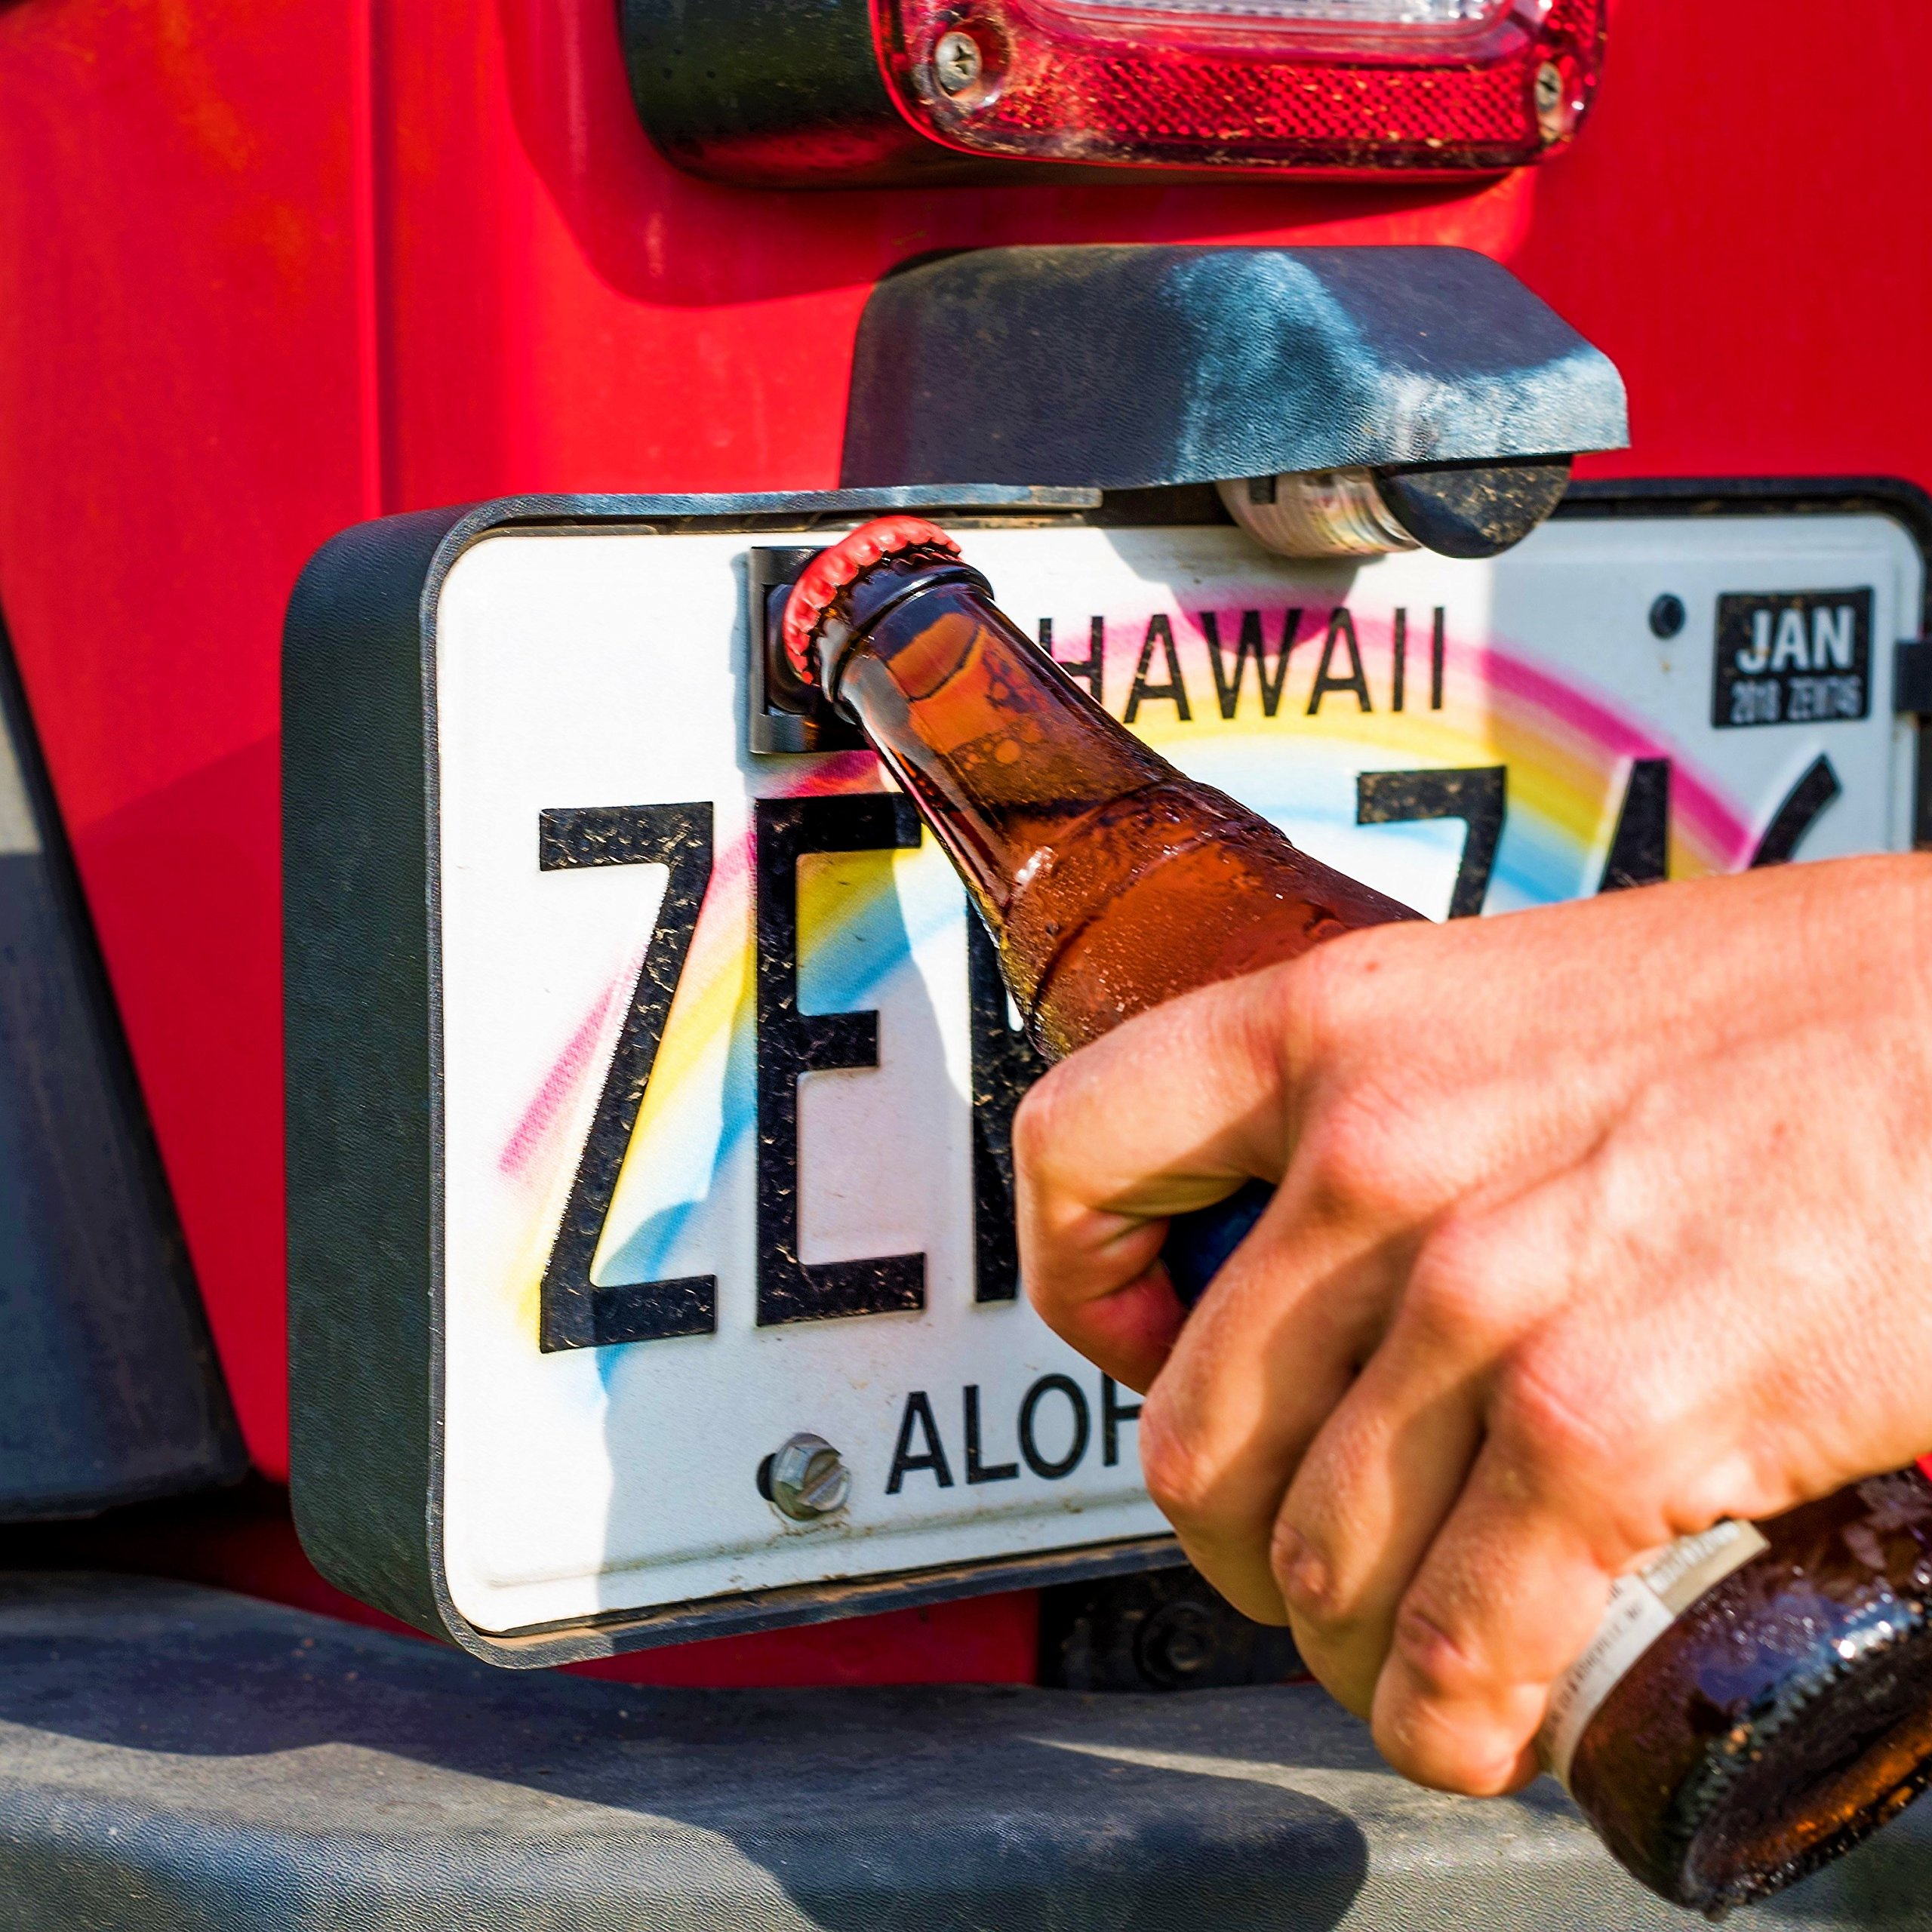 Rear License Plate Mounted Bottle Opener Tailgate Accessory fits Jeep Wrangler JL, JK, JKU and TJ Models - Awesome for Tailgating and a Great Addition to Your Jeep Wrangler Accessories